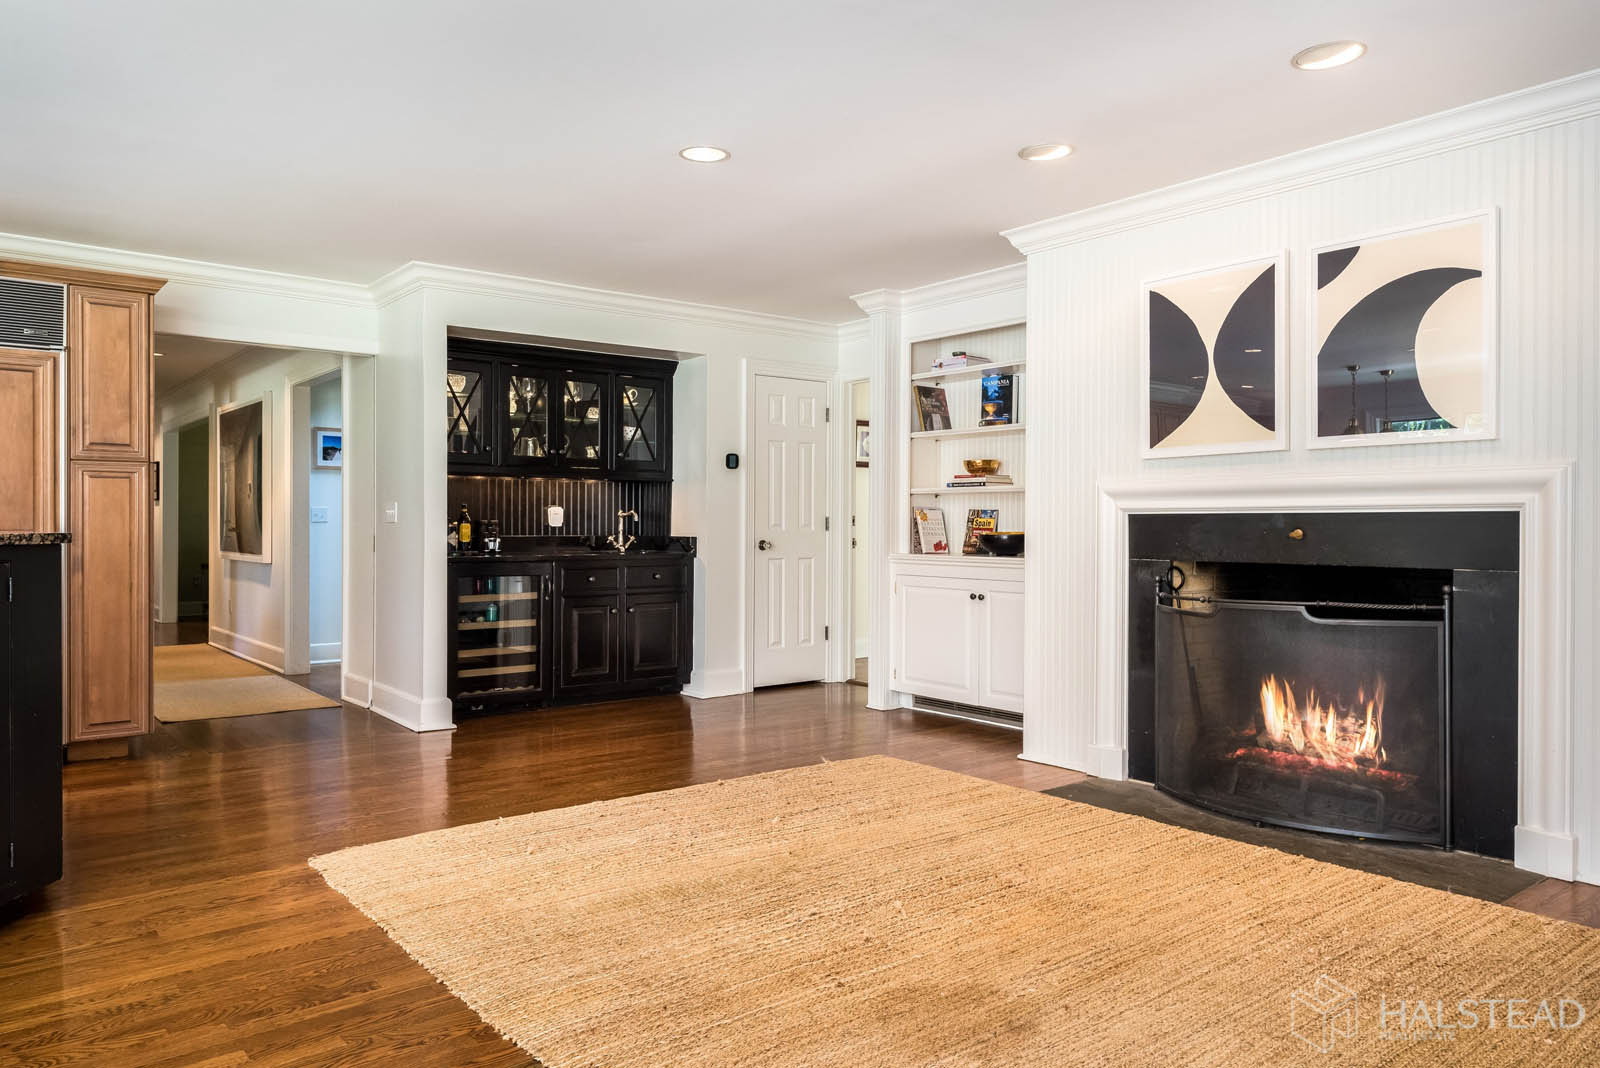 860 Hollow Tree Ridge Road, Darien, Connecticut, 06820, $1,675,000, Property For Sale, Halstead Real Estate, Photo 10